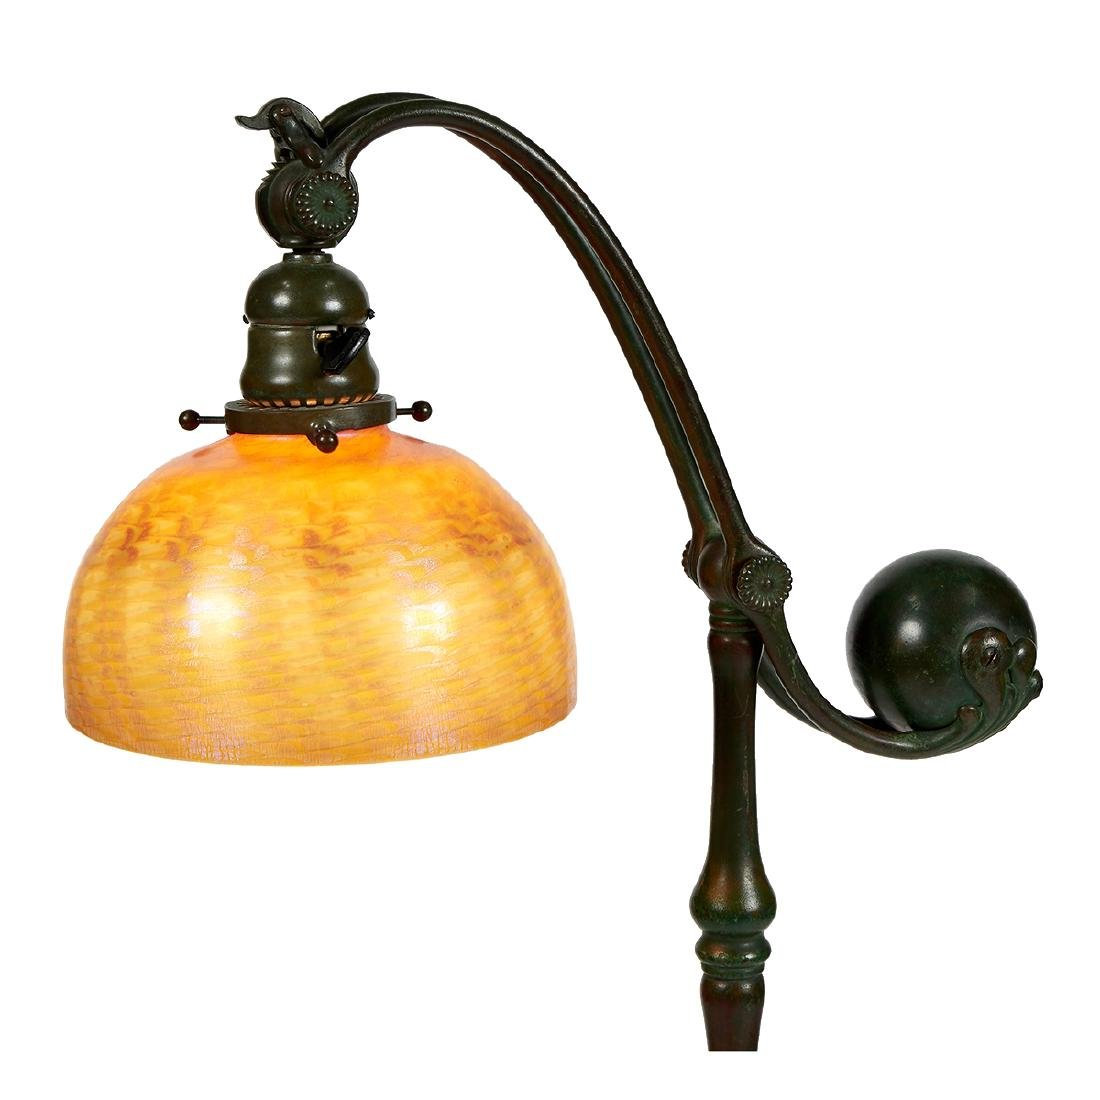 Tiffany Studios, Counter Balance Floor Lamp - 2